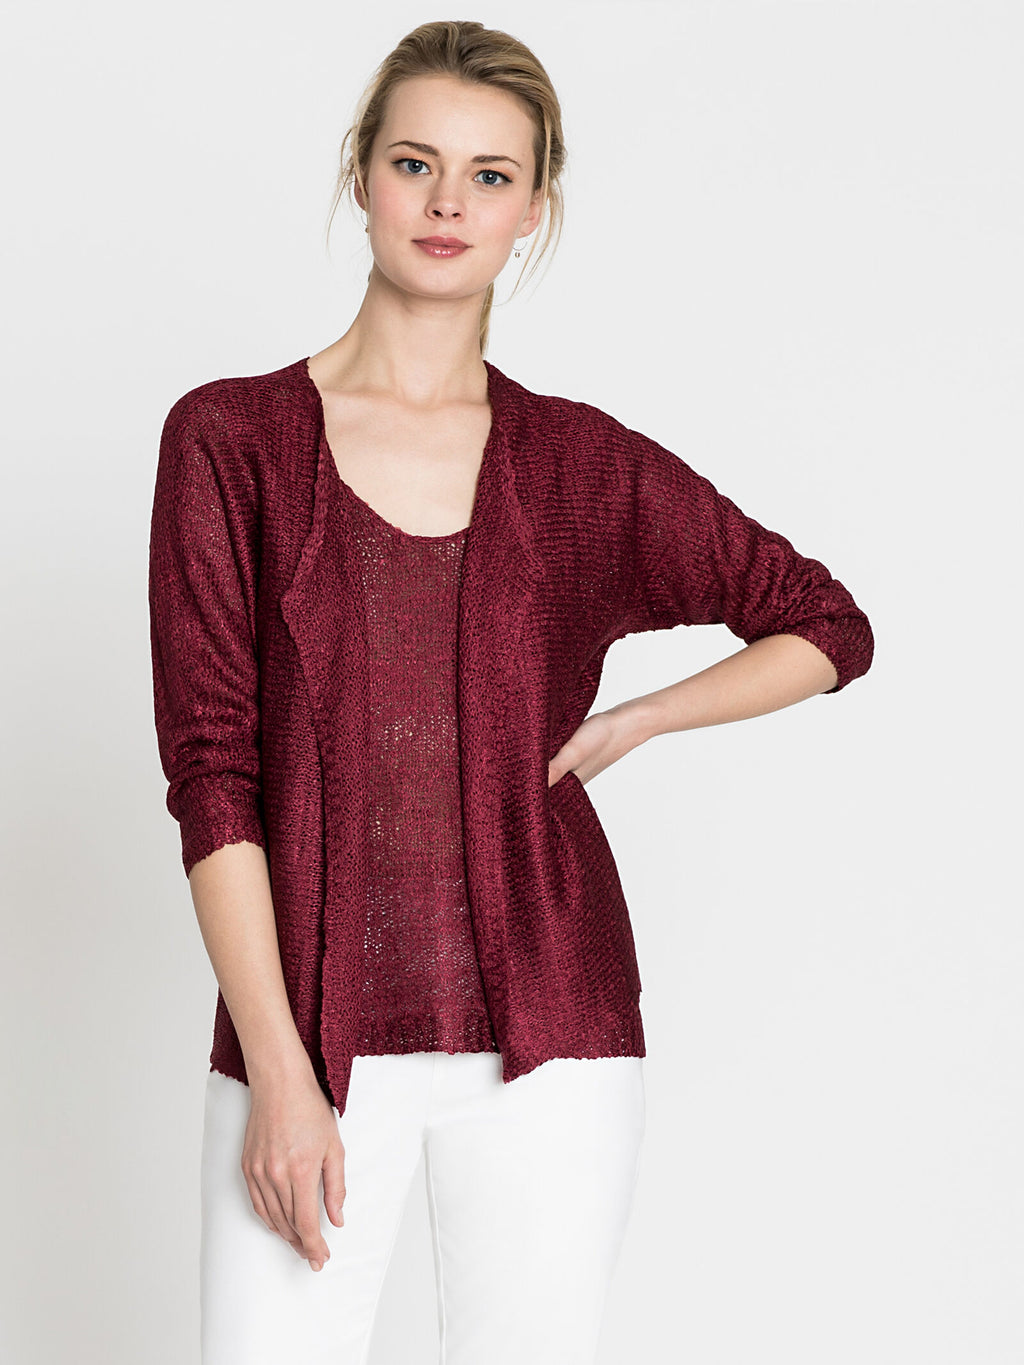 Rhythm of the Road Cardigan by NIC+ZOE